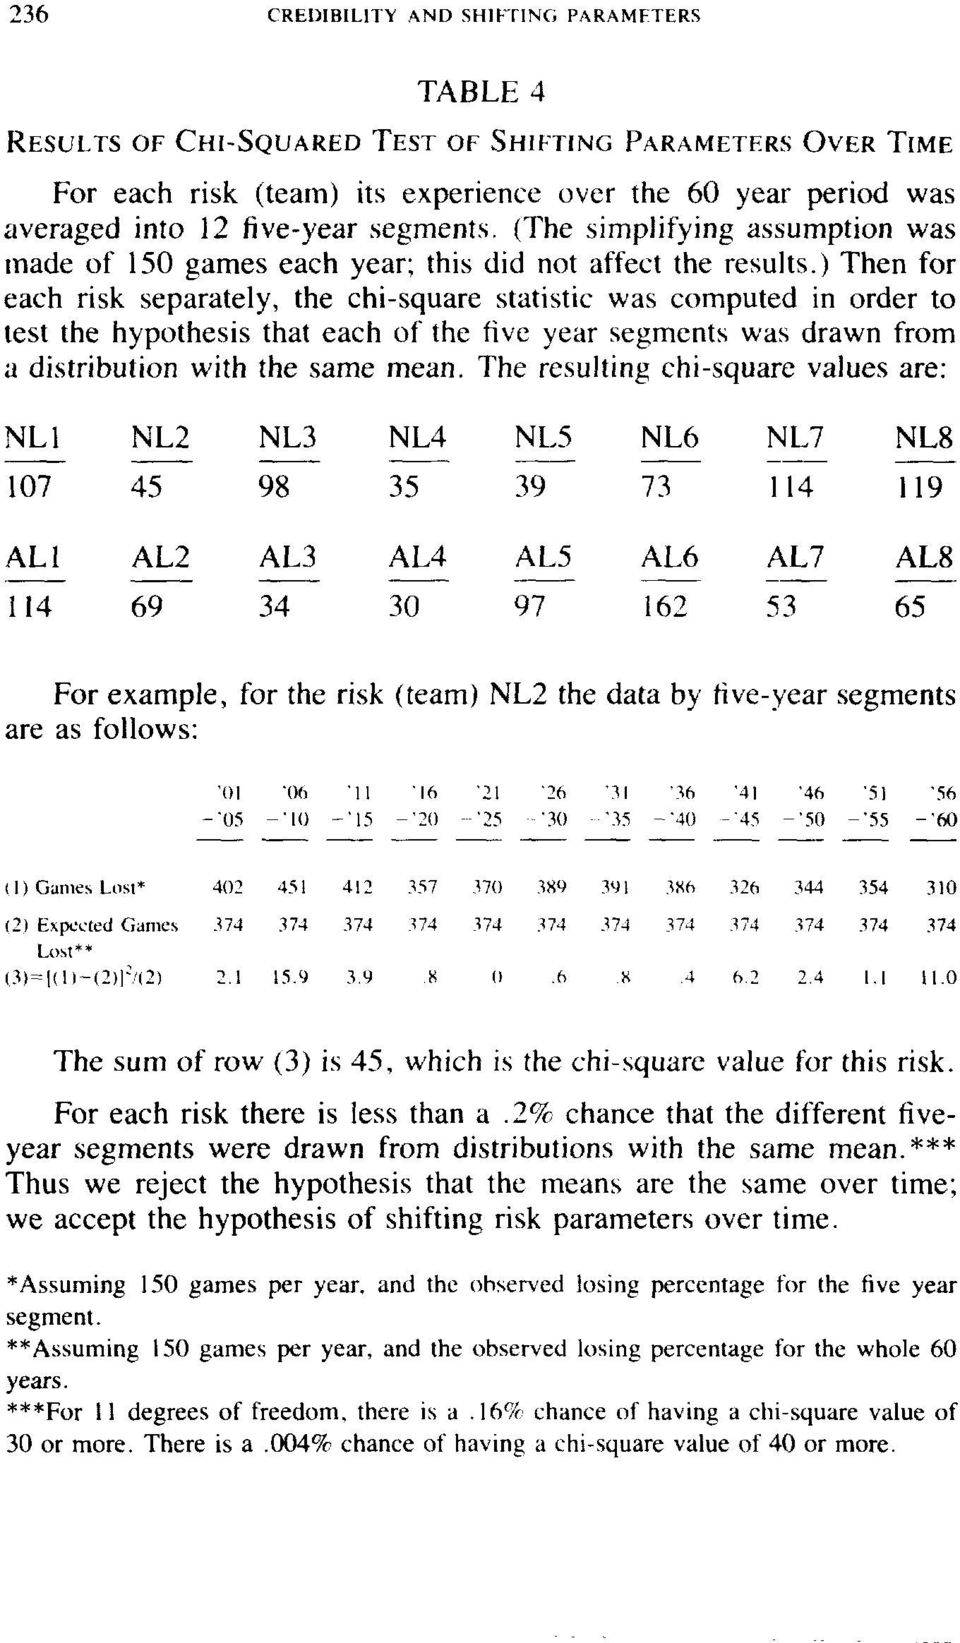 ) Then for each risk separately, the chi-square statistic was computed in order to test the hypothesis that each of the five year segments was drawn from a distribution with the same mean.